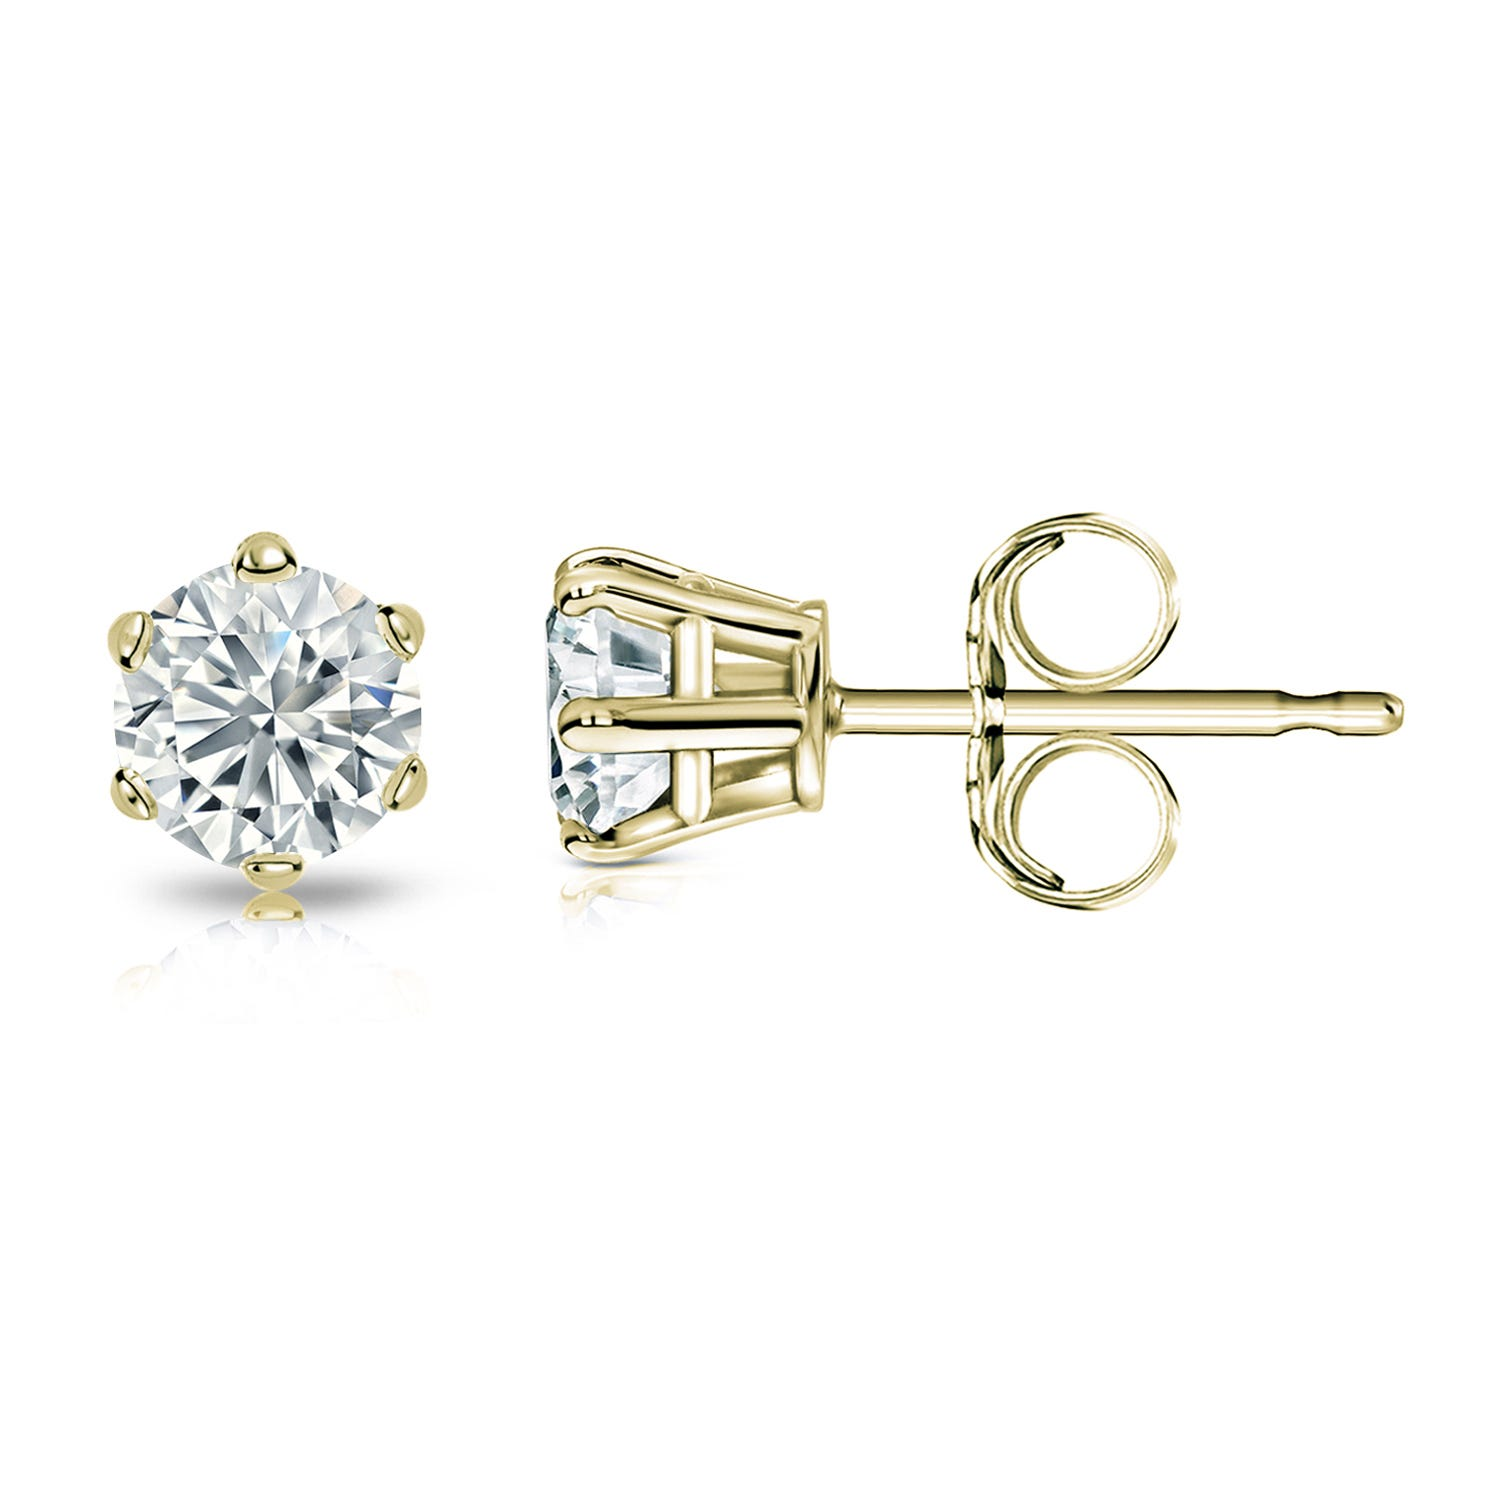 Round Diamond 5/8ctw. (IJ-I2) Solitaire Stud 6-Prong Earrings in 10K Yellow Gold